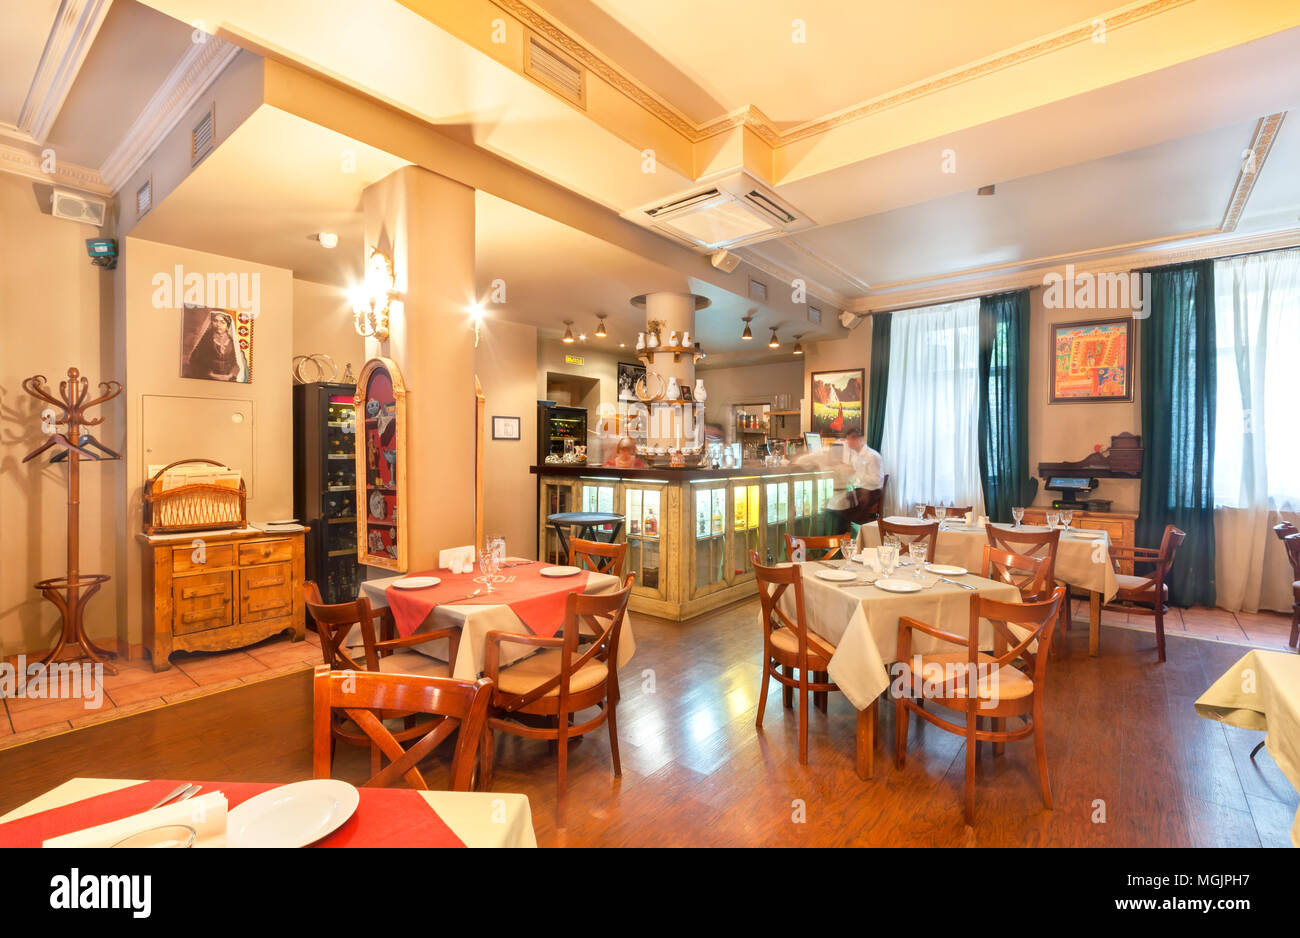 https www alamy com moscow august 2014 the restaurants interior is home to the armenian and caucasian cuisine gayanes hall with a bar and served tables image182351043 html